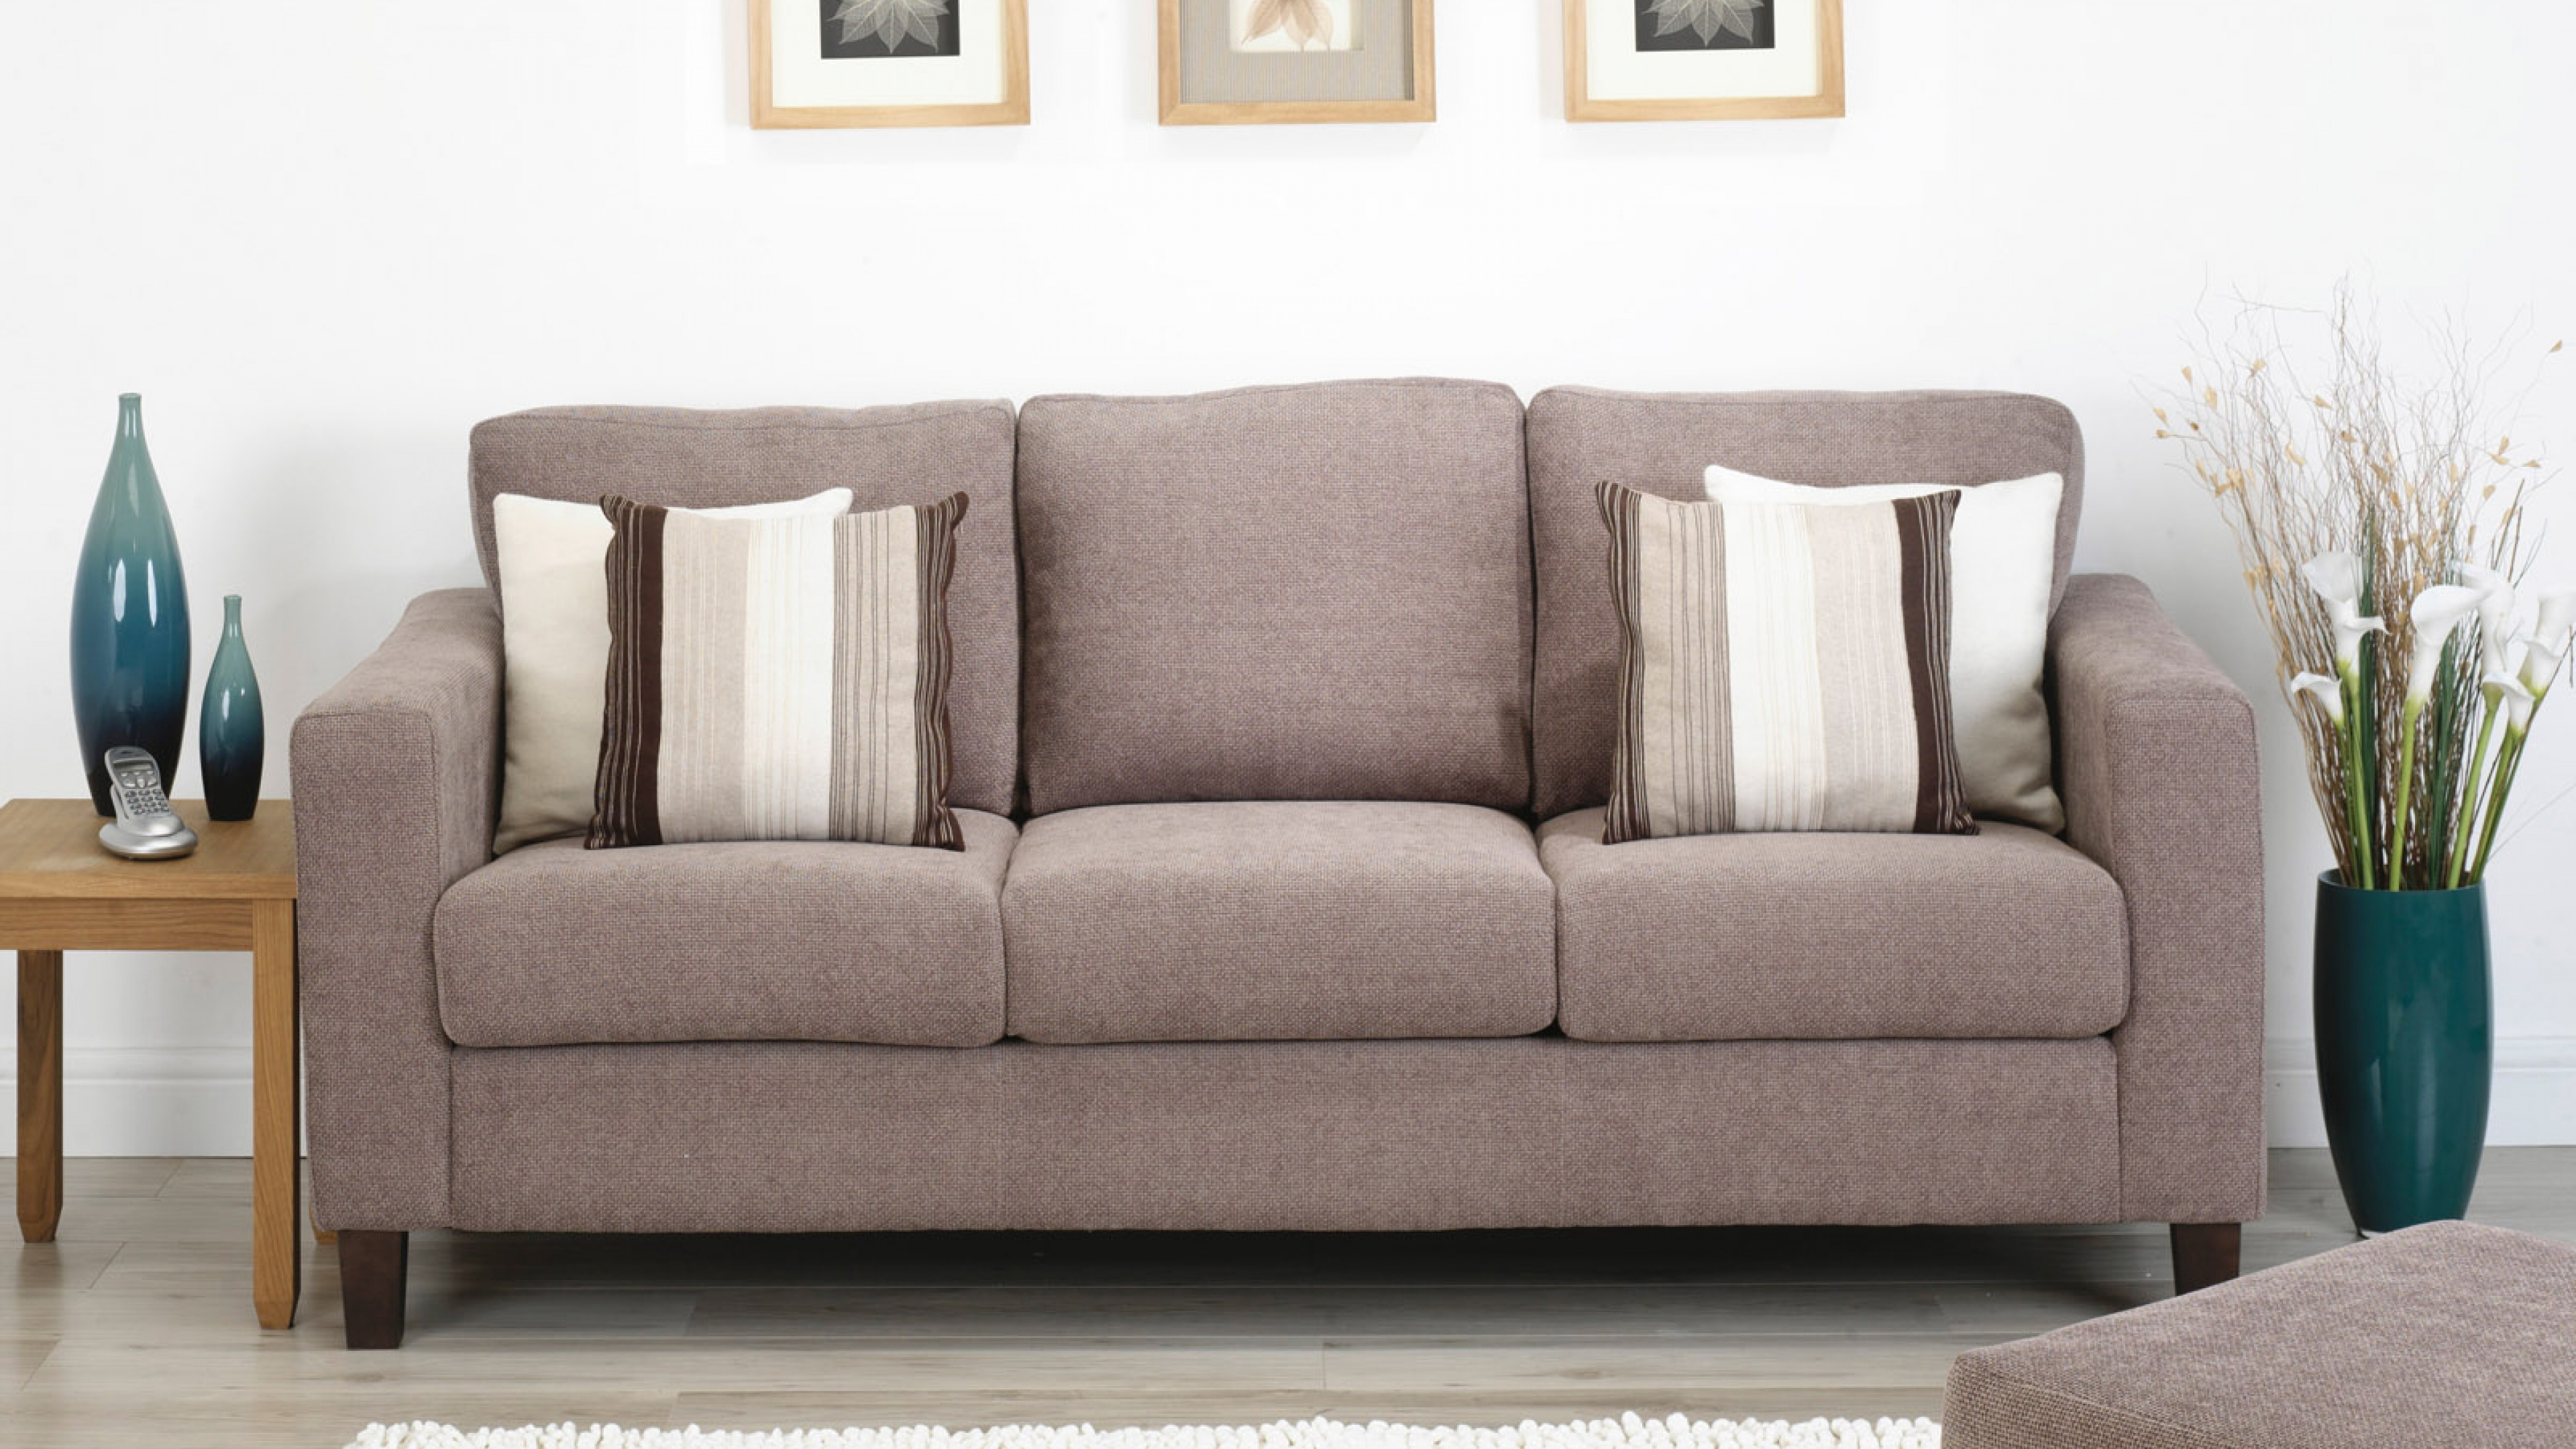 Luxury Sofa Pillows with Elegant Pattern for Living Room Interior: Gray Sofas With Sidetable And Sofa Pillows